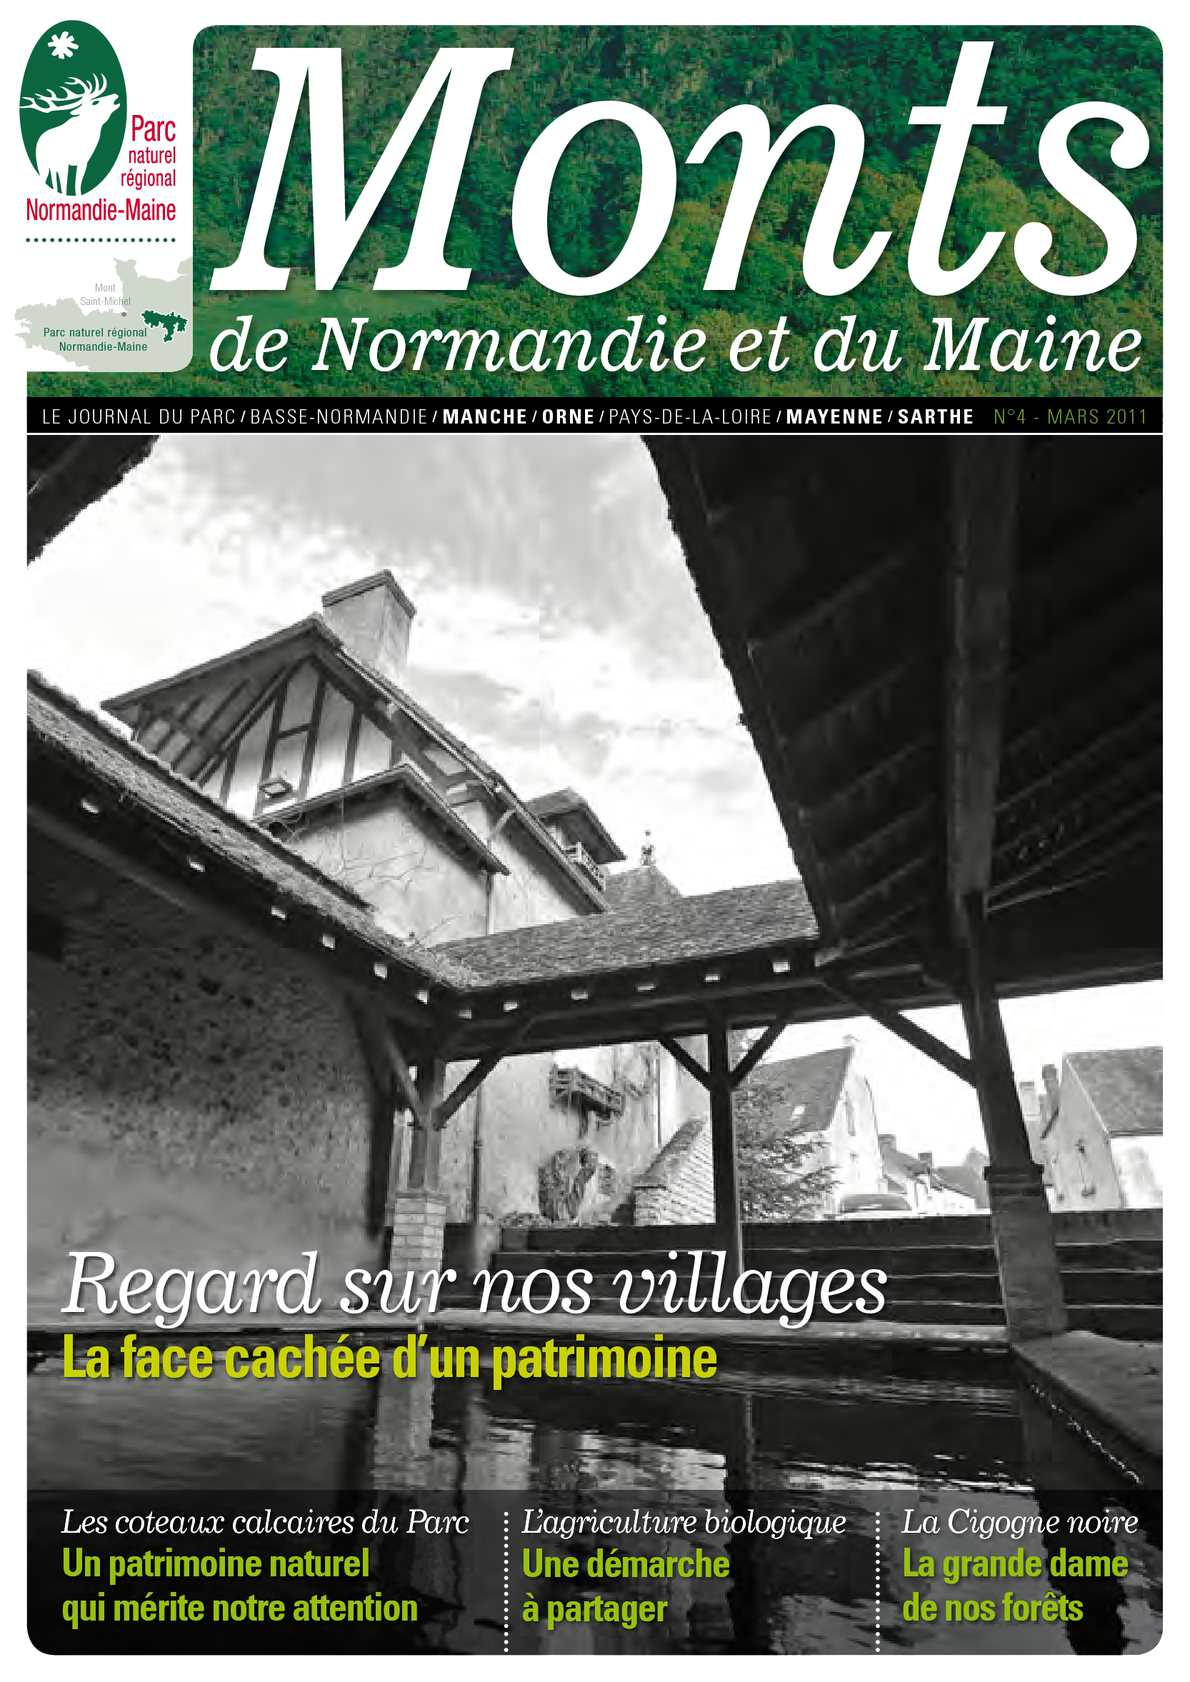 Calam o monts de normandie et du maine journal du parc n 4 mars 2011 - Journal basse normandie ...